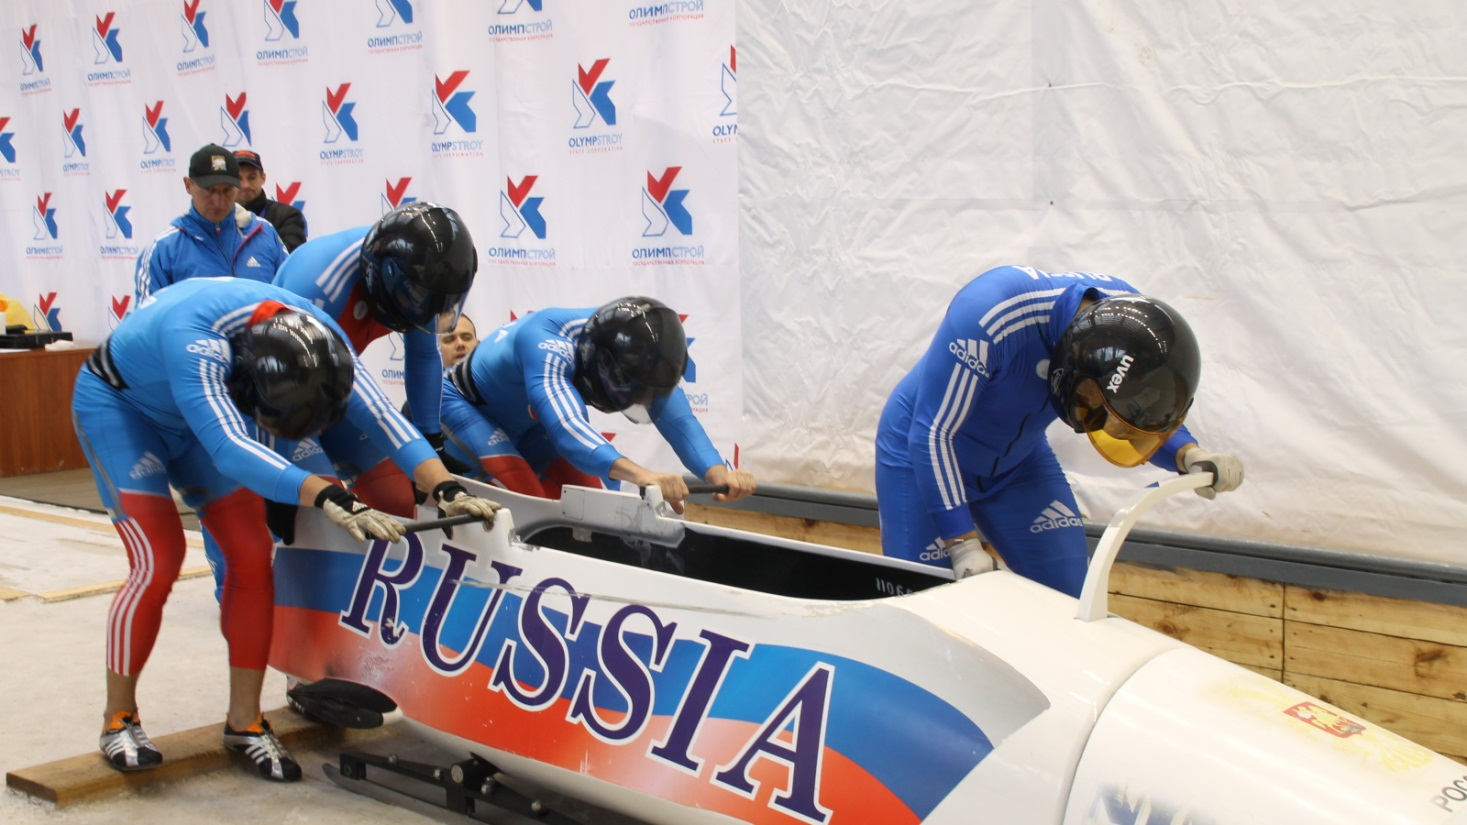 K:\_Gold_Medal_of_the_Russian_bobsledder_at_the_Olympics_in_Sochi_069878_25.jpg